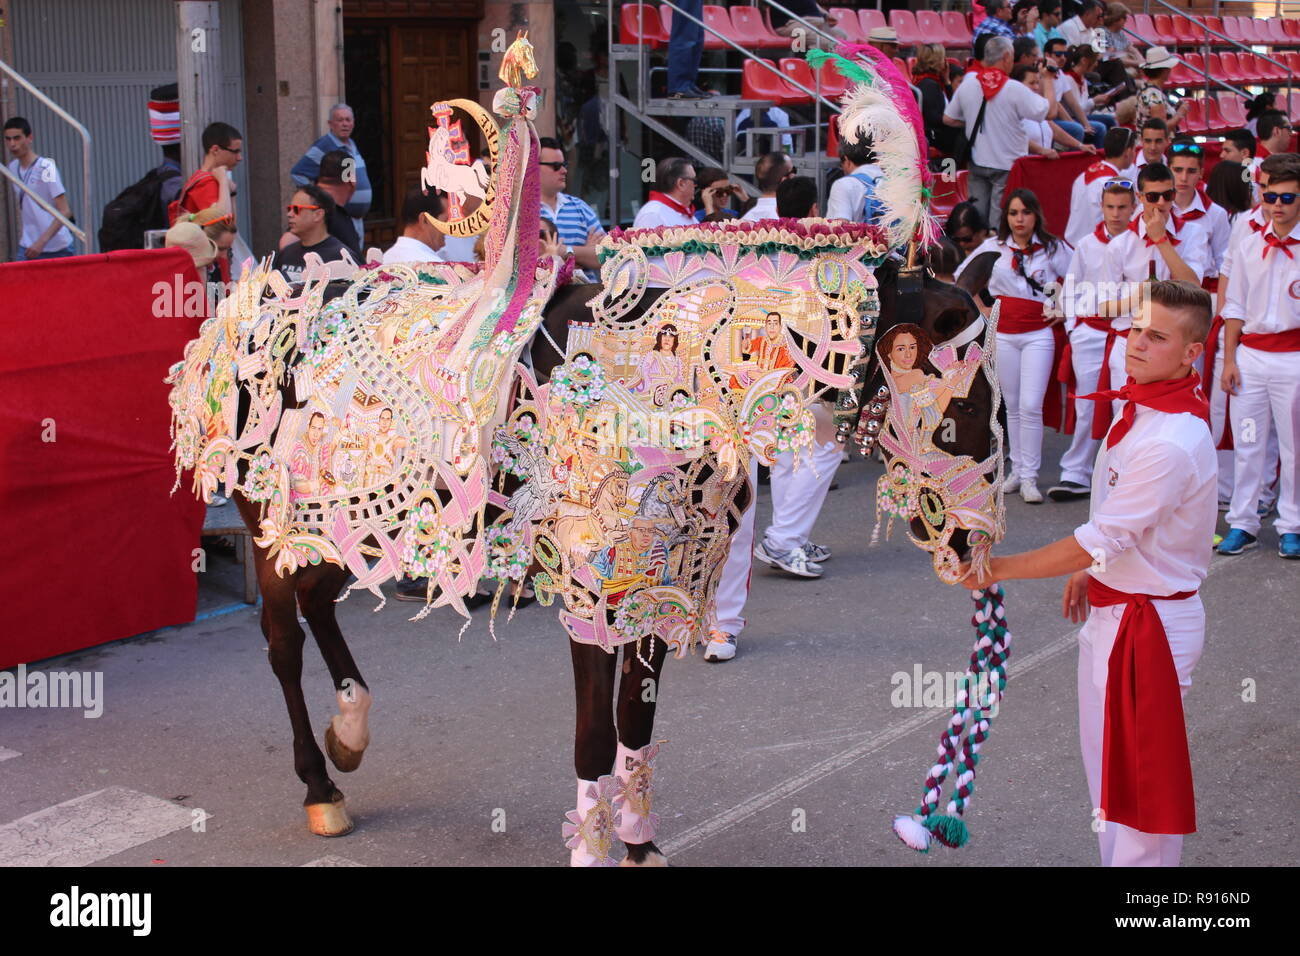 Boy with a horse in embroidered costume in the parade at Los Caballos Del Vino Caravaca de la Cruz.  Embroidery is used to make the horse costume - Stock Image